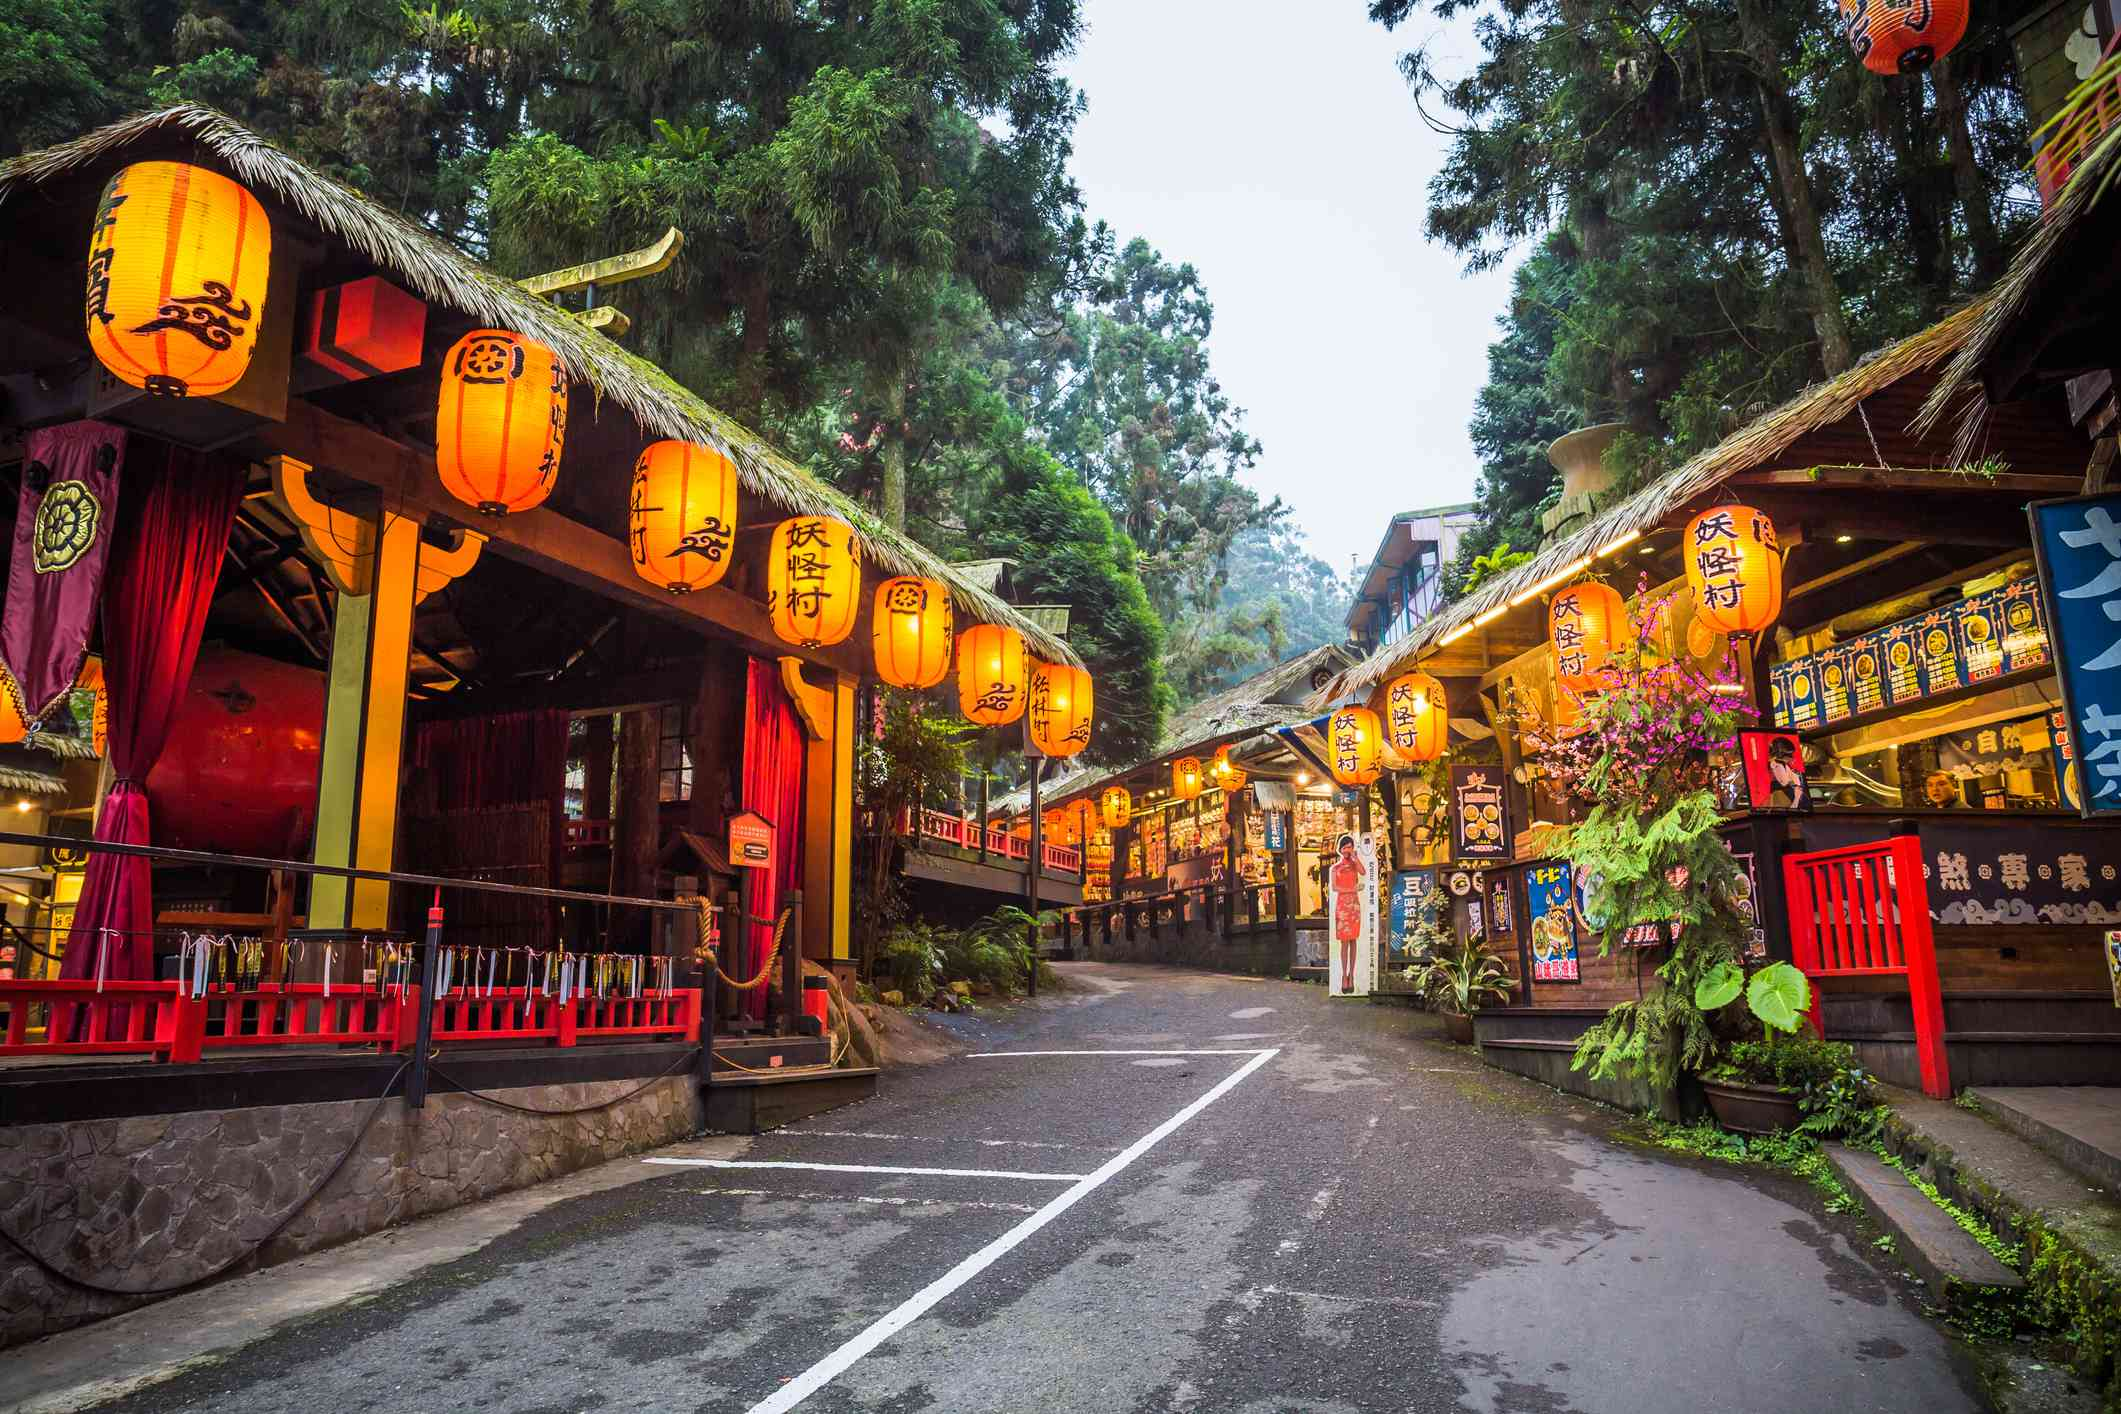 short buildings with large lanterns on an empty street in the Xitou Monster Village, Taiwan